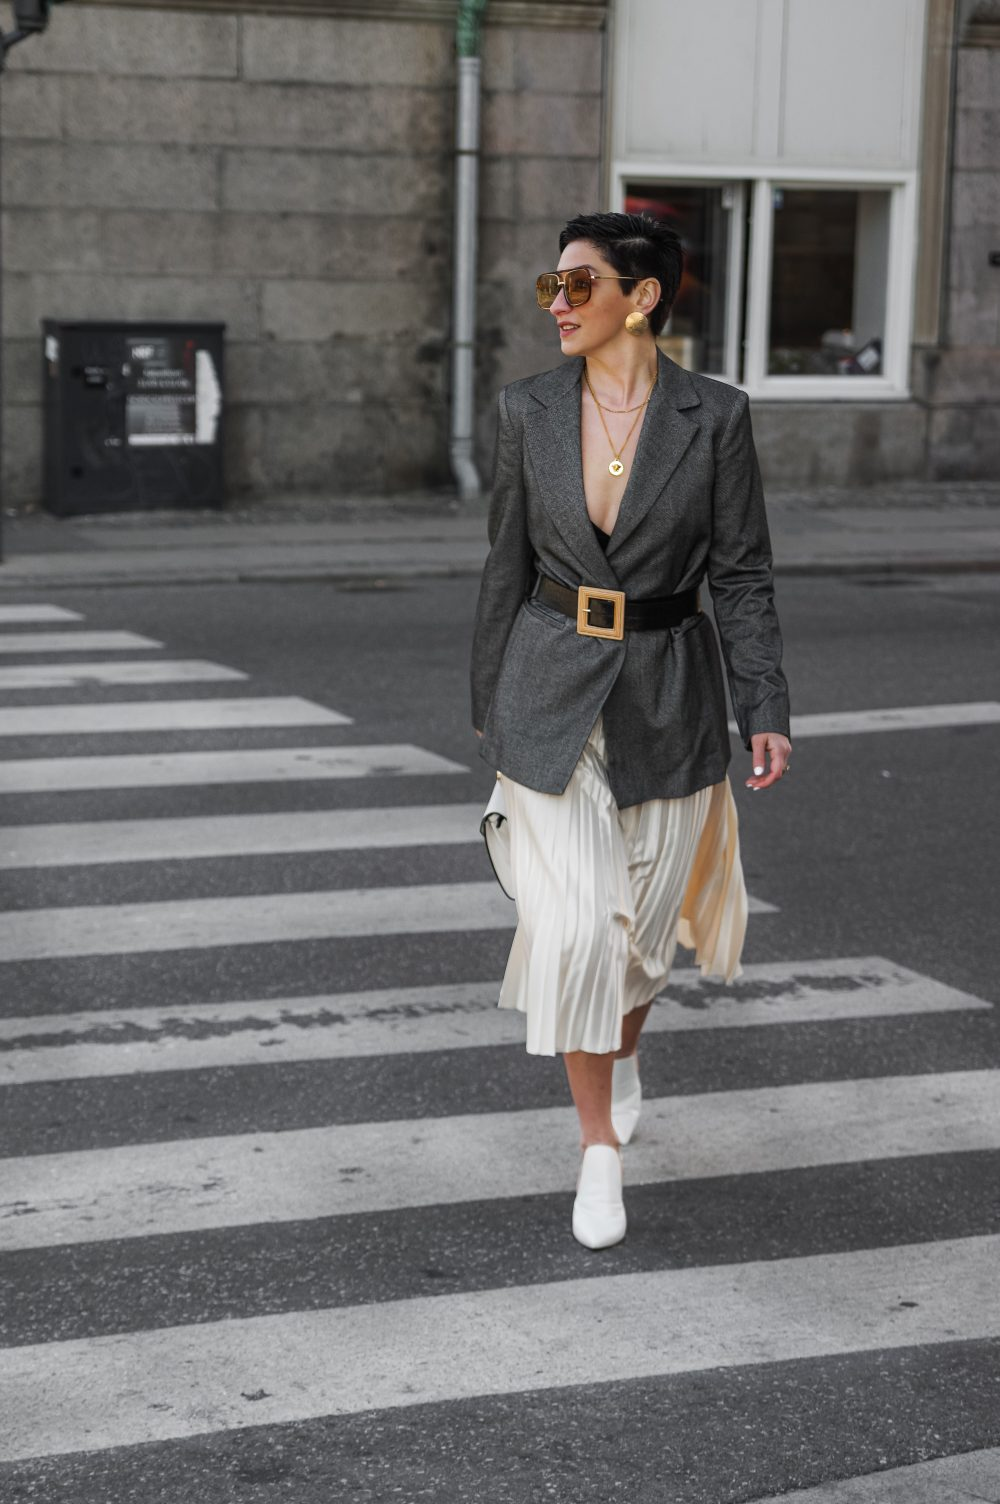 Spring-summer-work-wear-outfit-ideas-pleated-skirtblazer-scandinavian-fashion-style-white-skirt-minimalistic-style